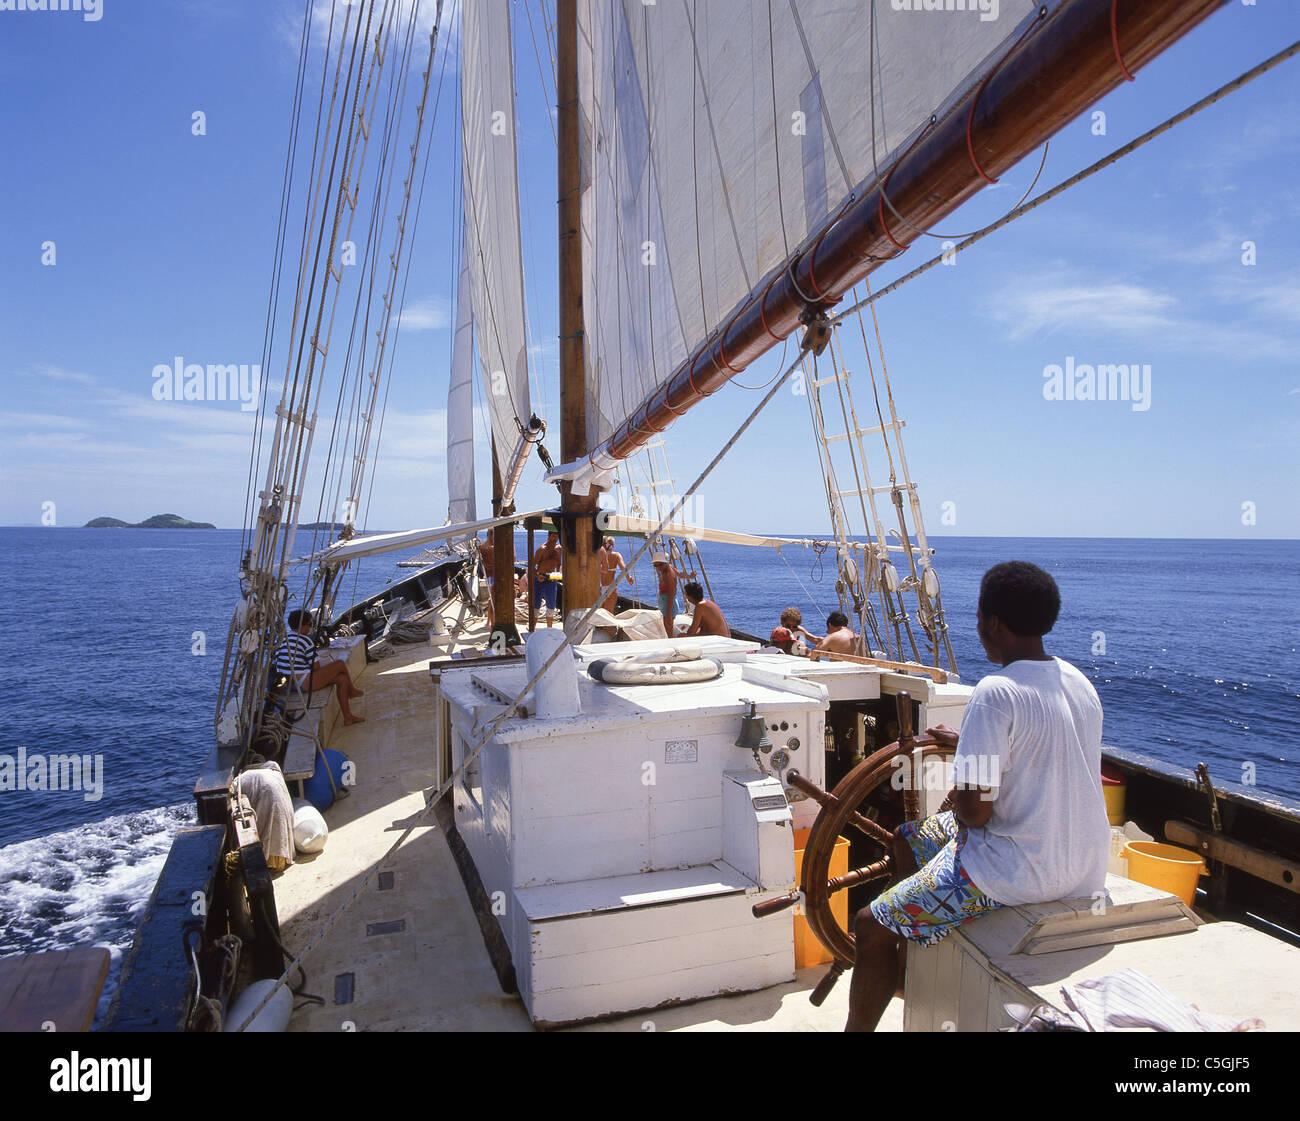 Yachting excursion, Barbados, Lesser Antilles, Caribbean - Stock Image